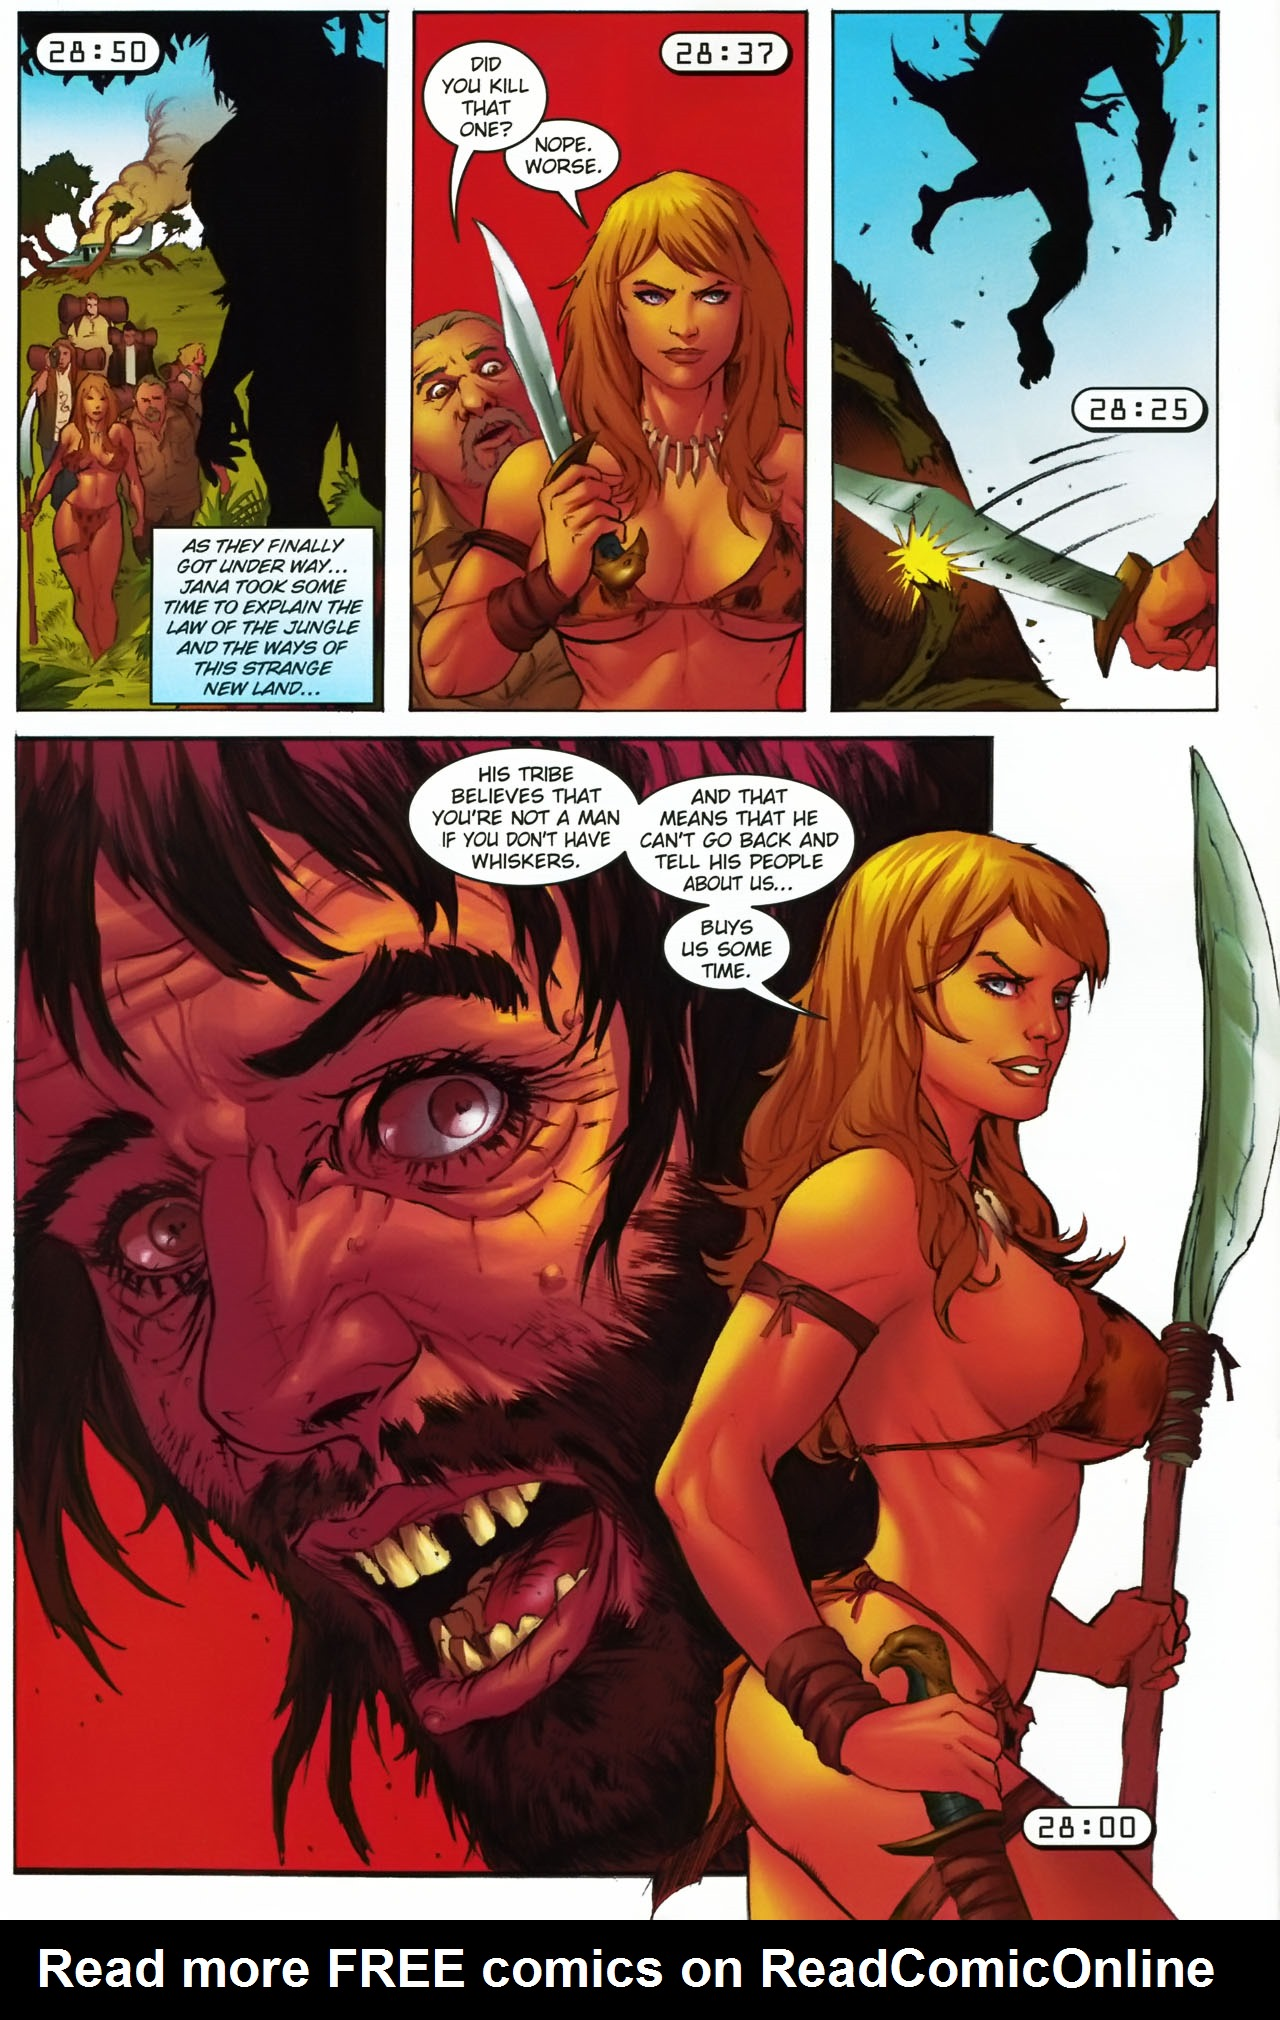 Read online Jungle Girl comic -  Issue #1 - 15